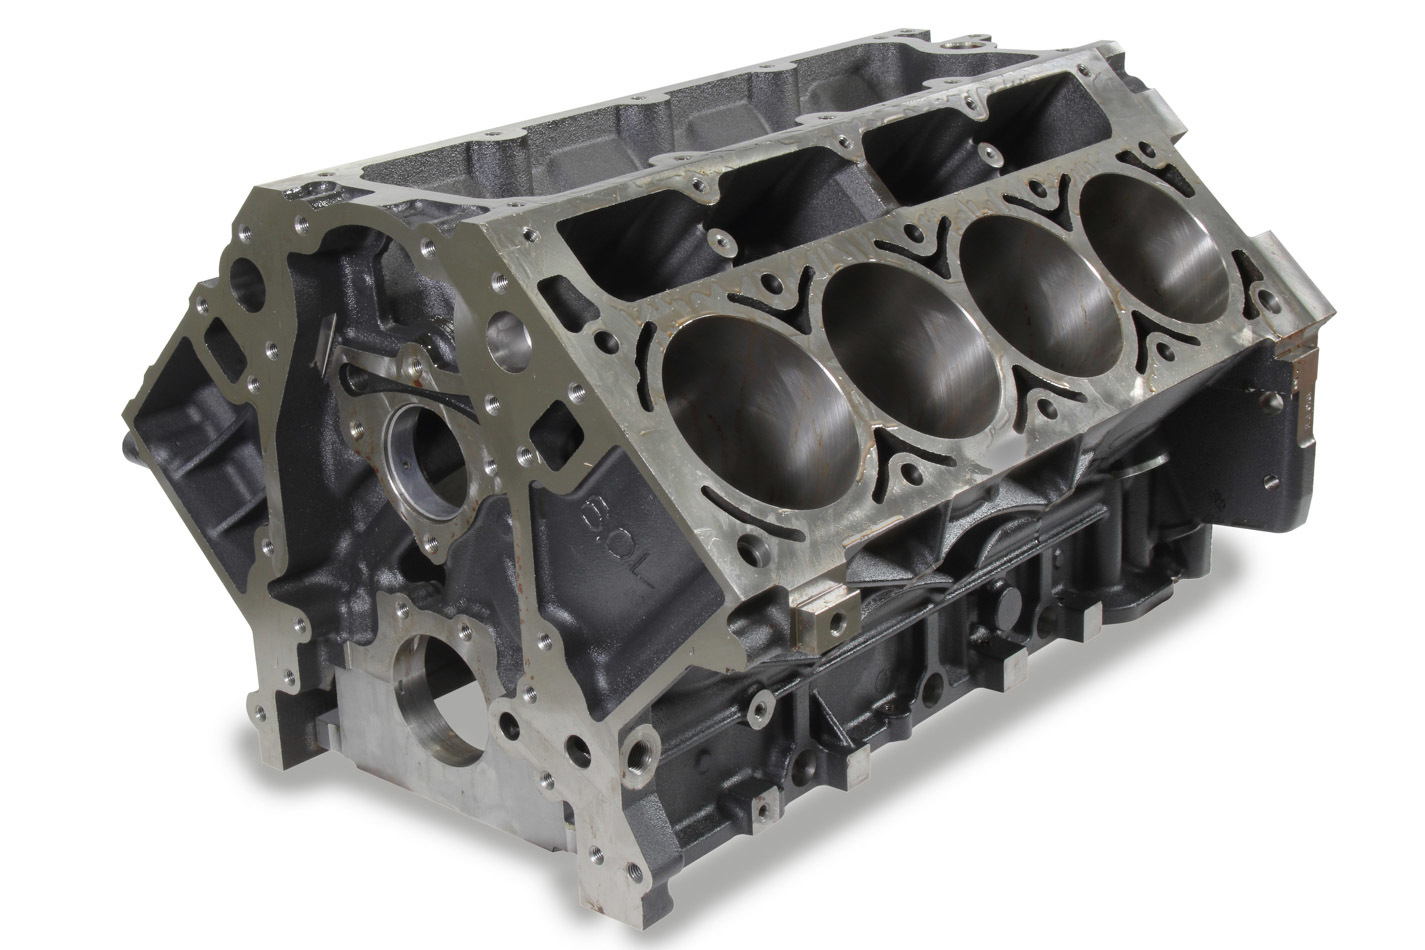 CHEVROLET PERFORMANCE 6.0L LS Engine Block LQ4/LQ9